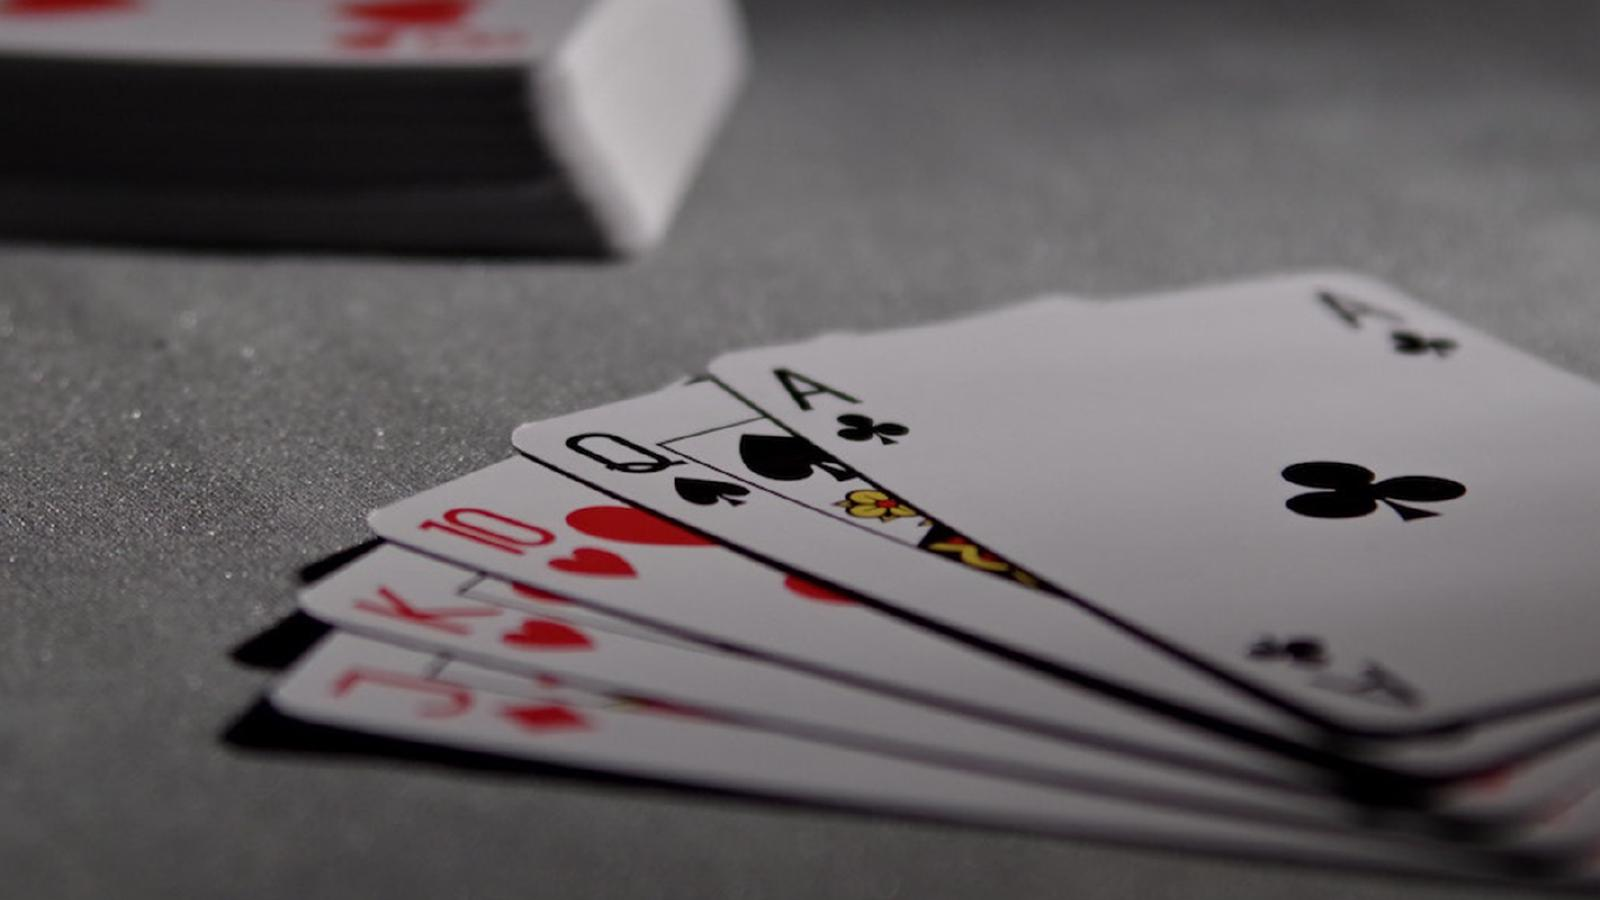 Essential Things To Know About Pokdeng Card Games At An Online Casino